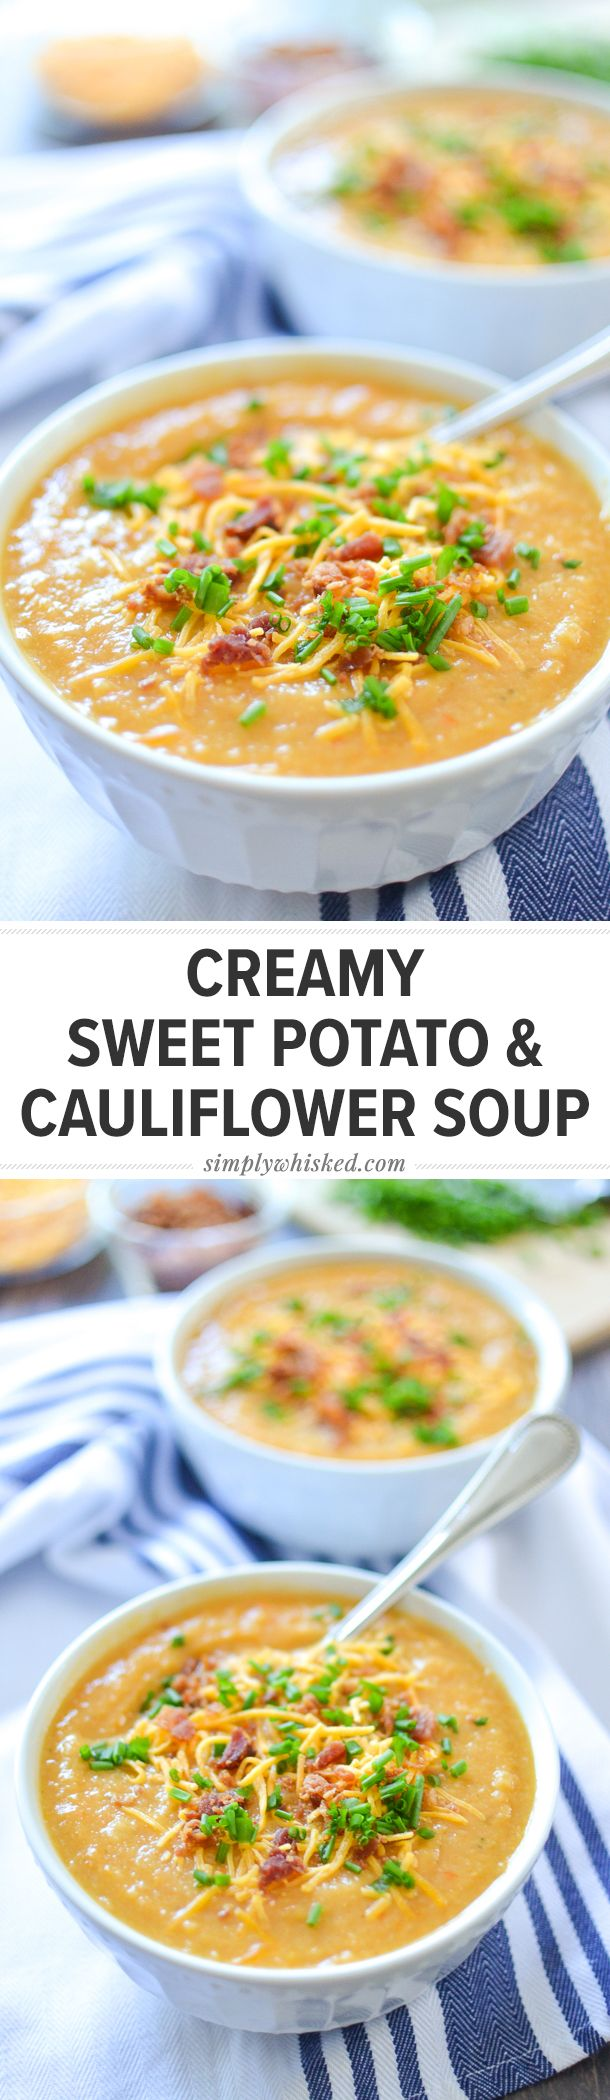 Creamy Sweet Potato & Cauliflower Soup   @simplywhisked                                                                                                                                                                                 More